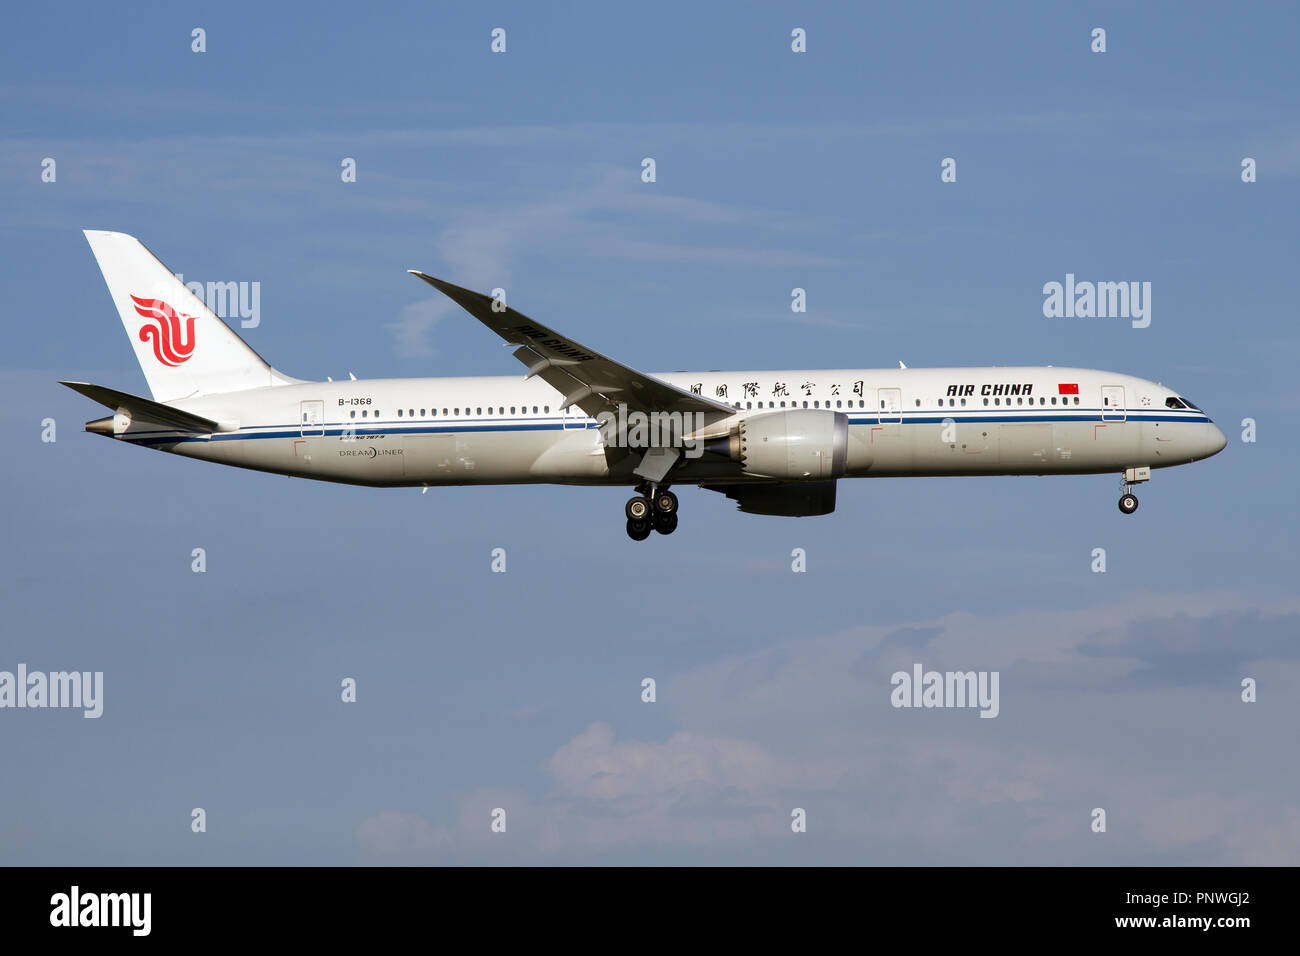 Air China Boeing 787-9 Dreamliner landing at Rome Fiumicino airport - Stock Image